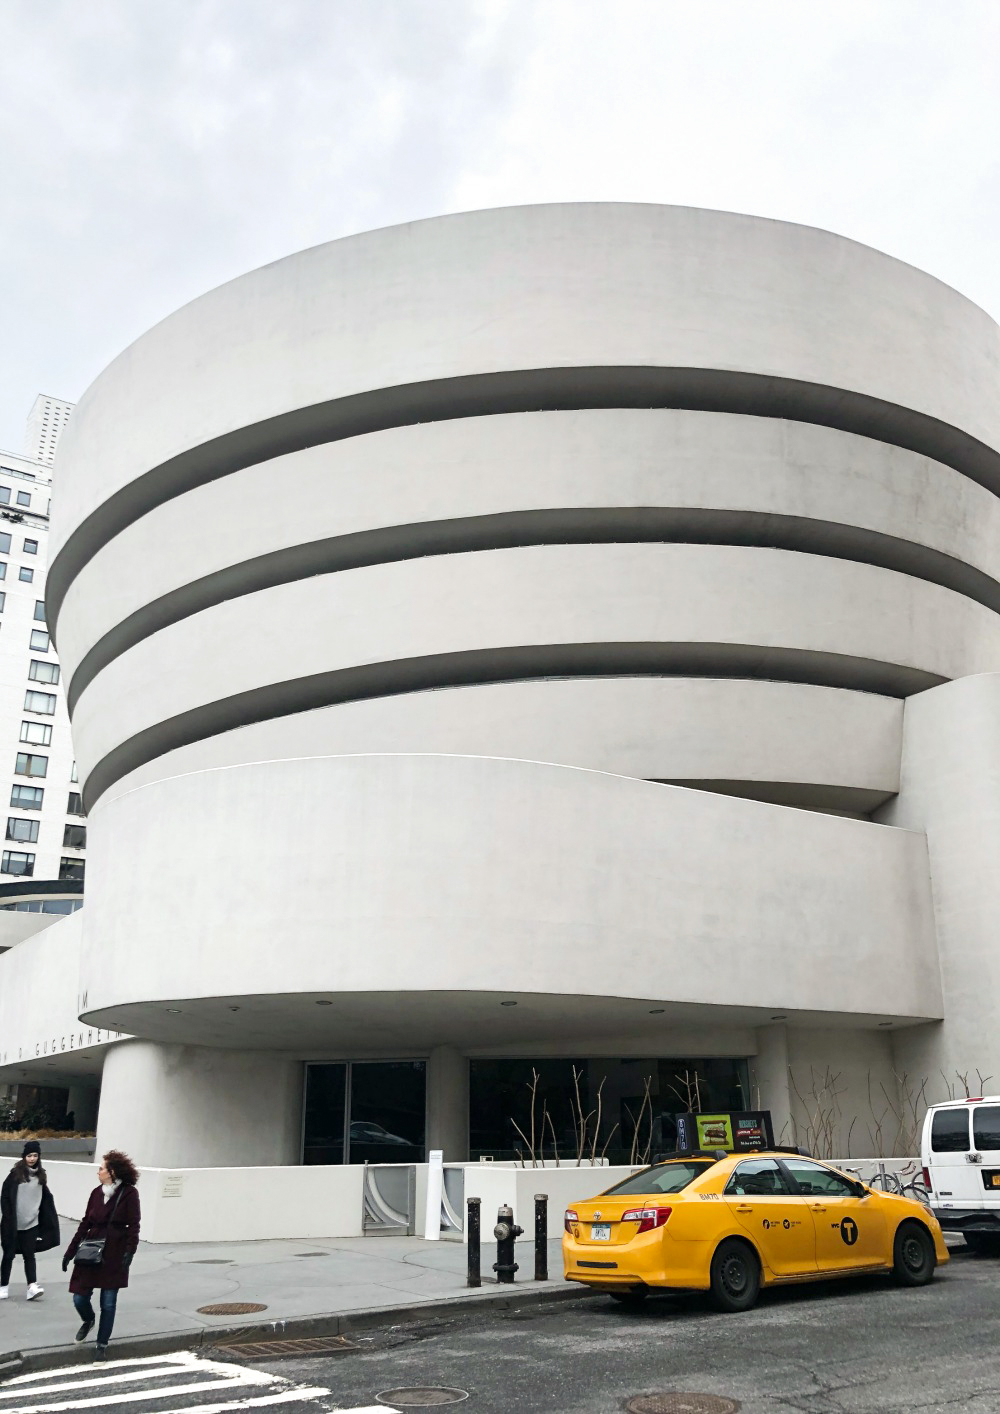 Affordable New York City Travel Guide I The Guggenheim Museum #Travel #TRavelGuide #NYC